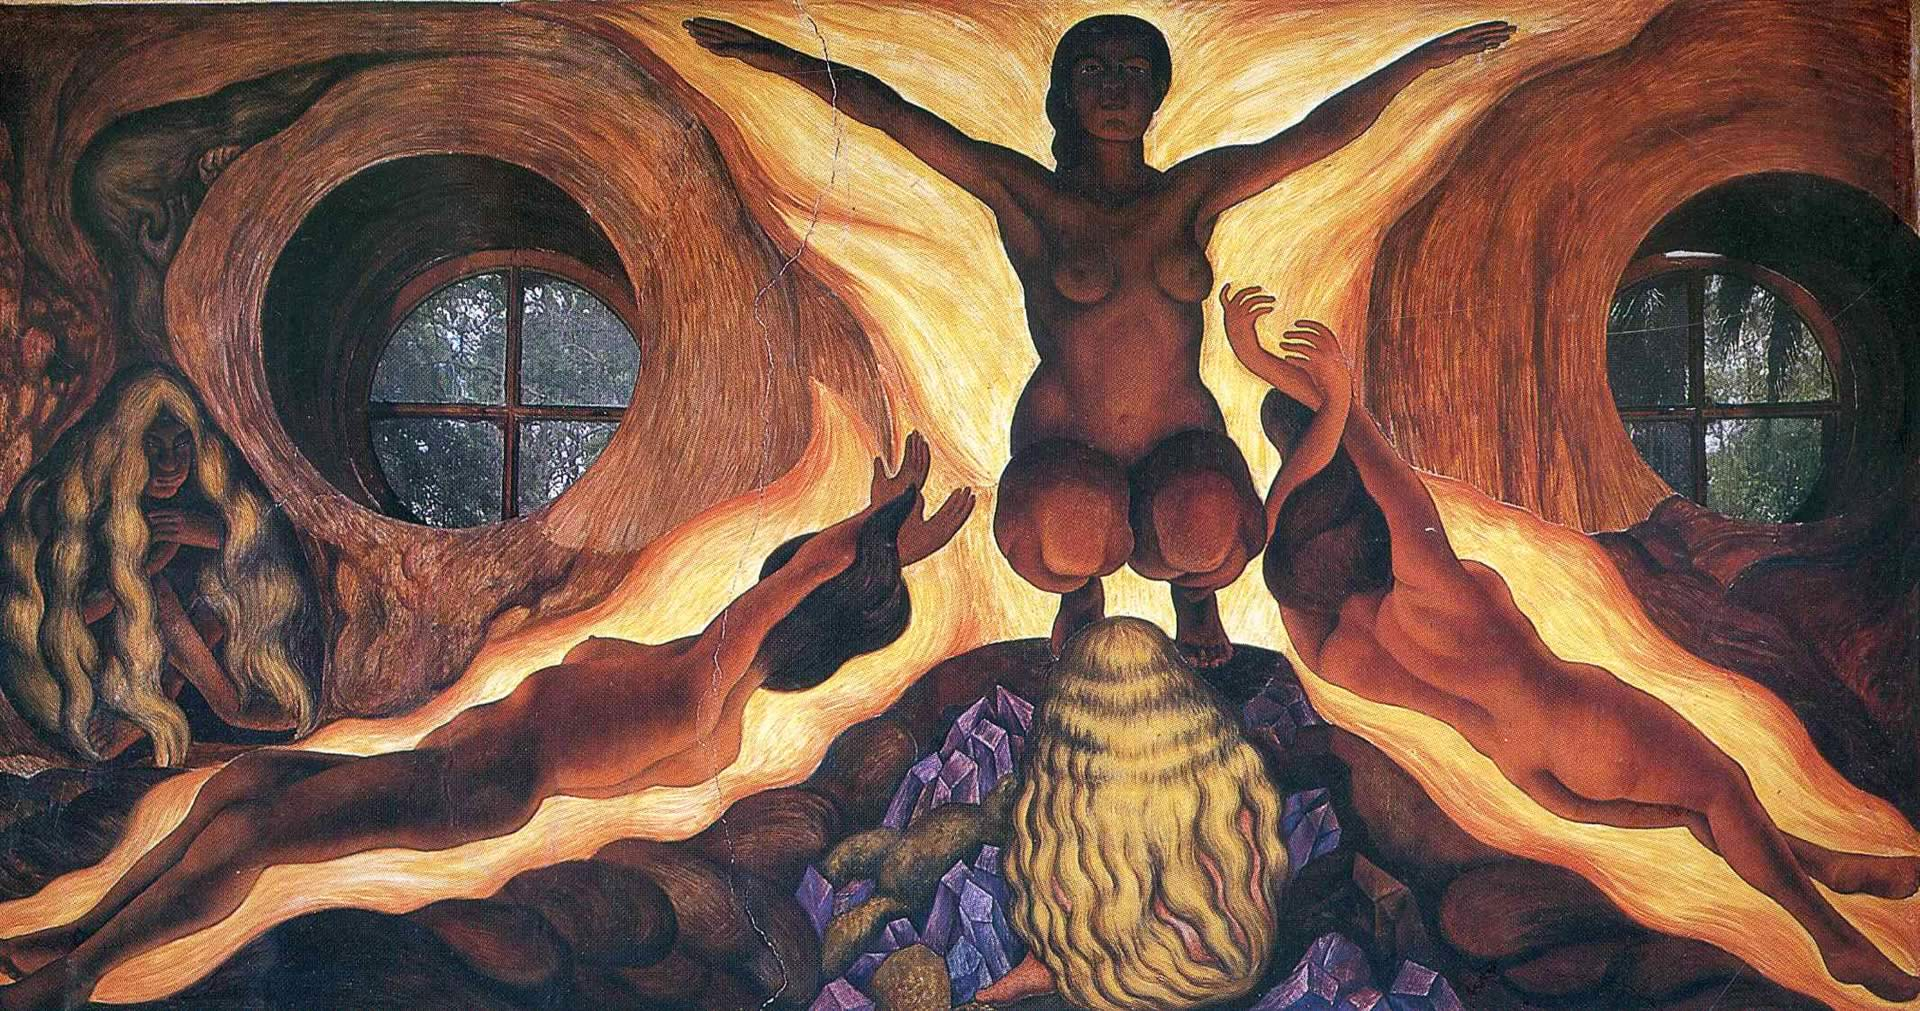 Diego rivera wallpapers wallpaper cave for Muralisme mexicain